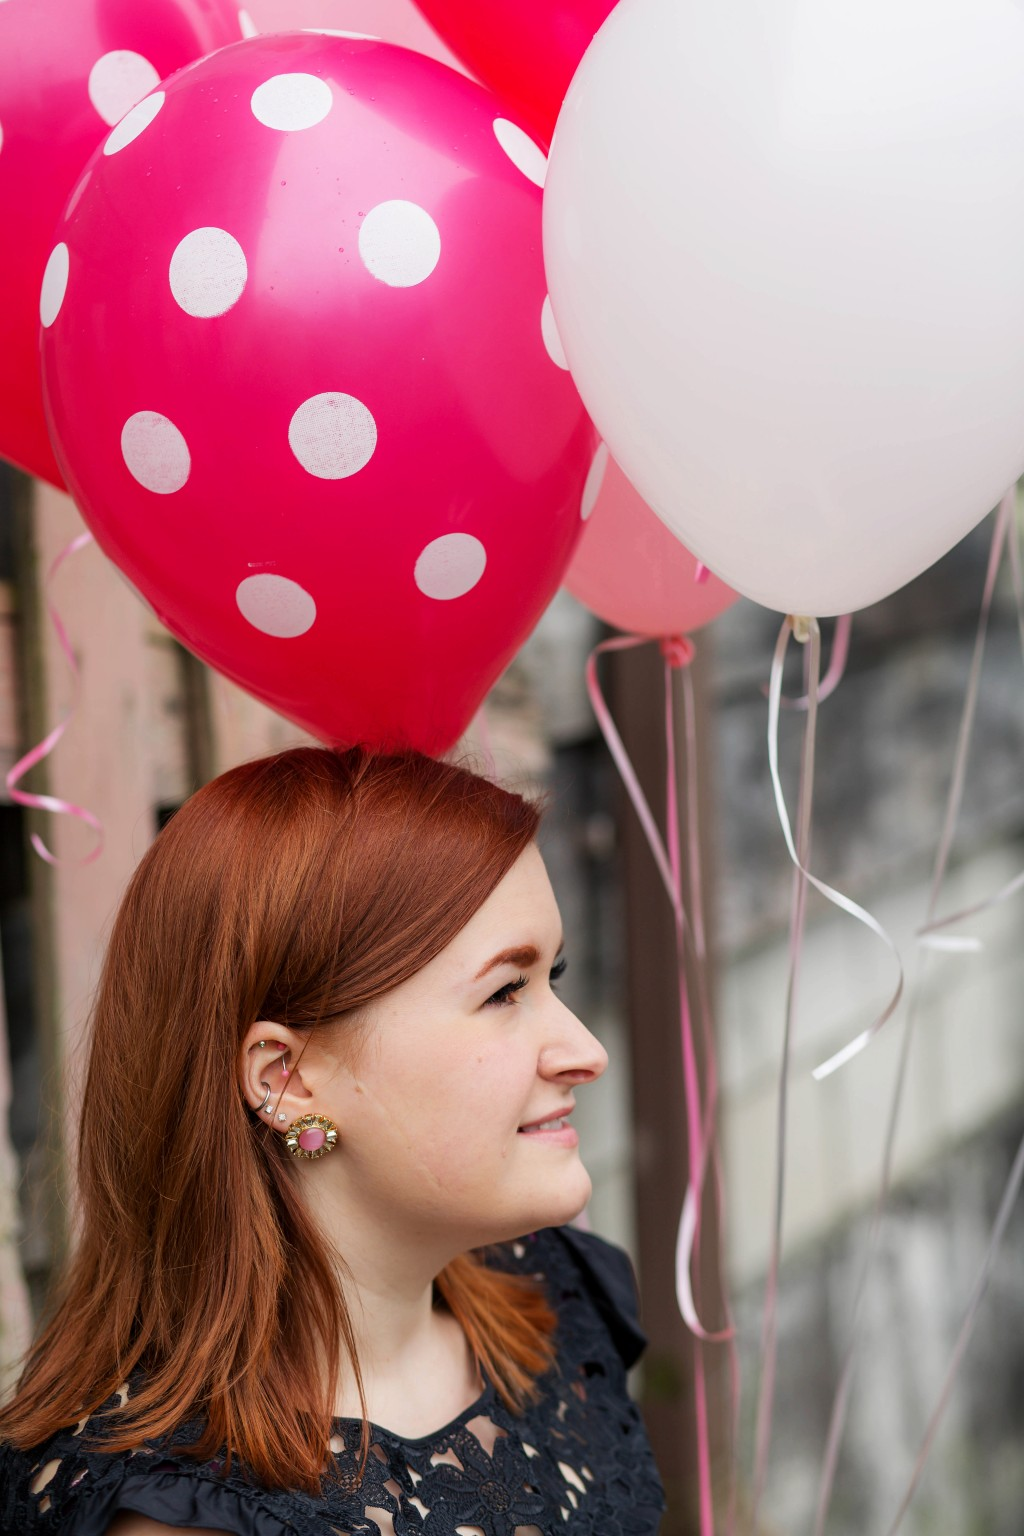 7 - Kate Spade Earrings and polka dot balloons